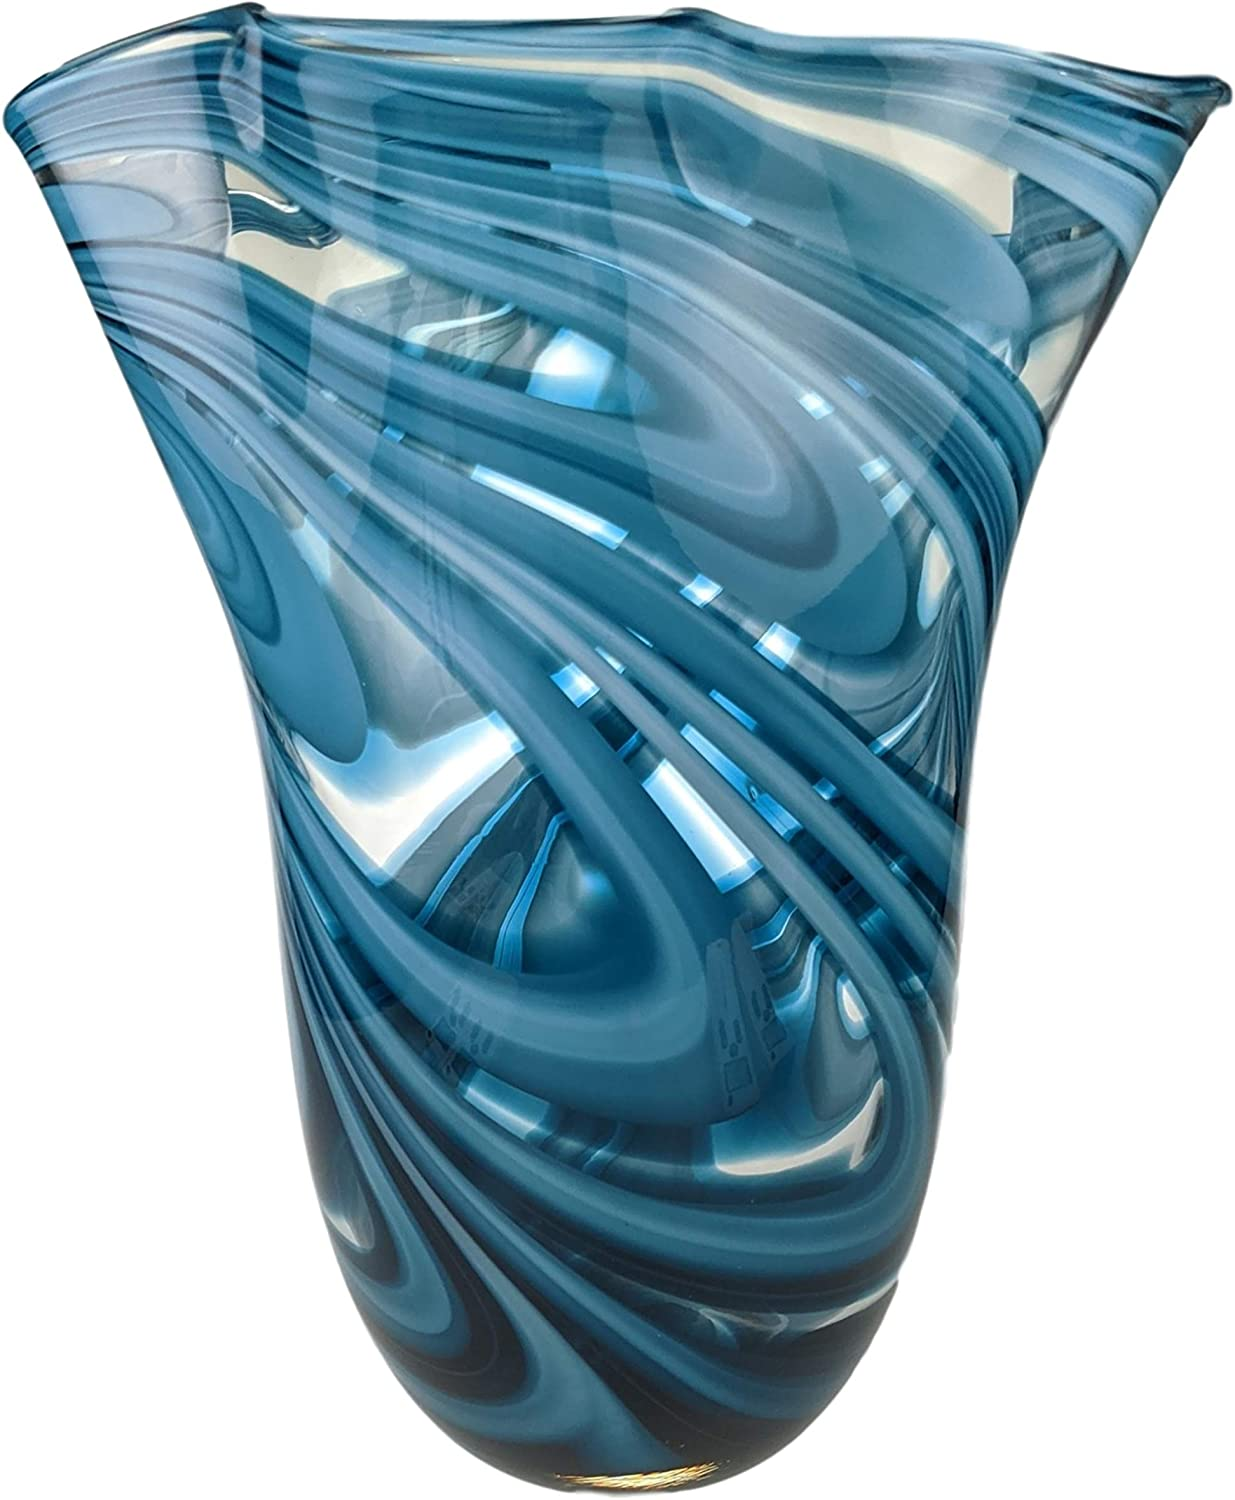 Exquisite Glass Decor Hand Blown Large Blue Clear Tall Flower Art Glass Vase for Modern Decorative Home Decor for Living Room, Kitchen,Wedding & Office Centerpiece Table to Display Flowers